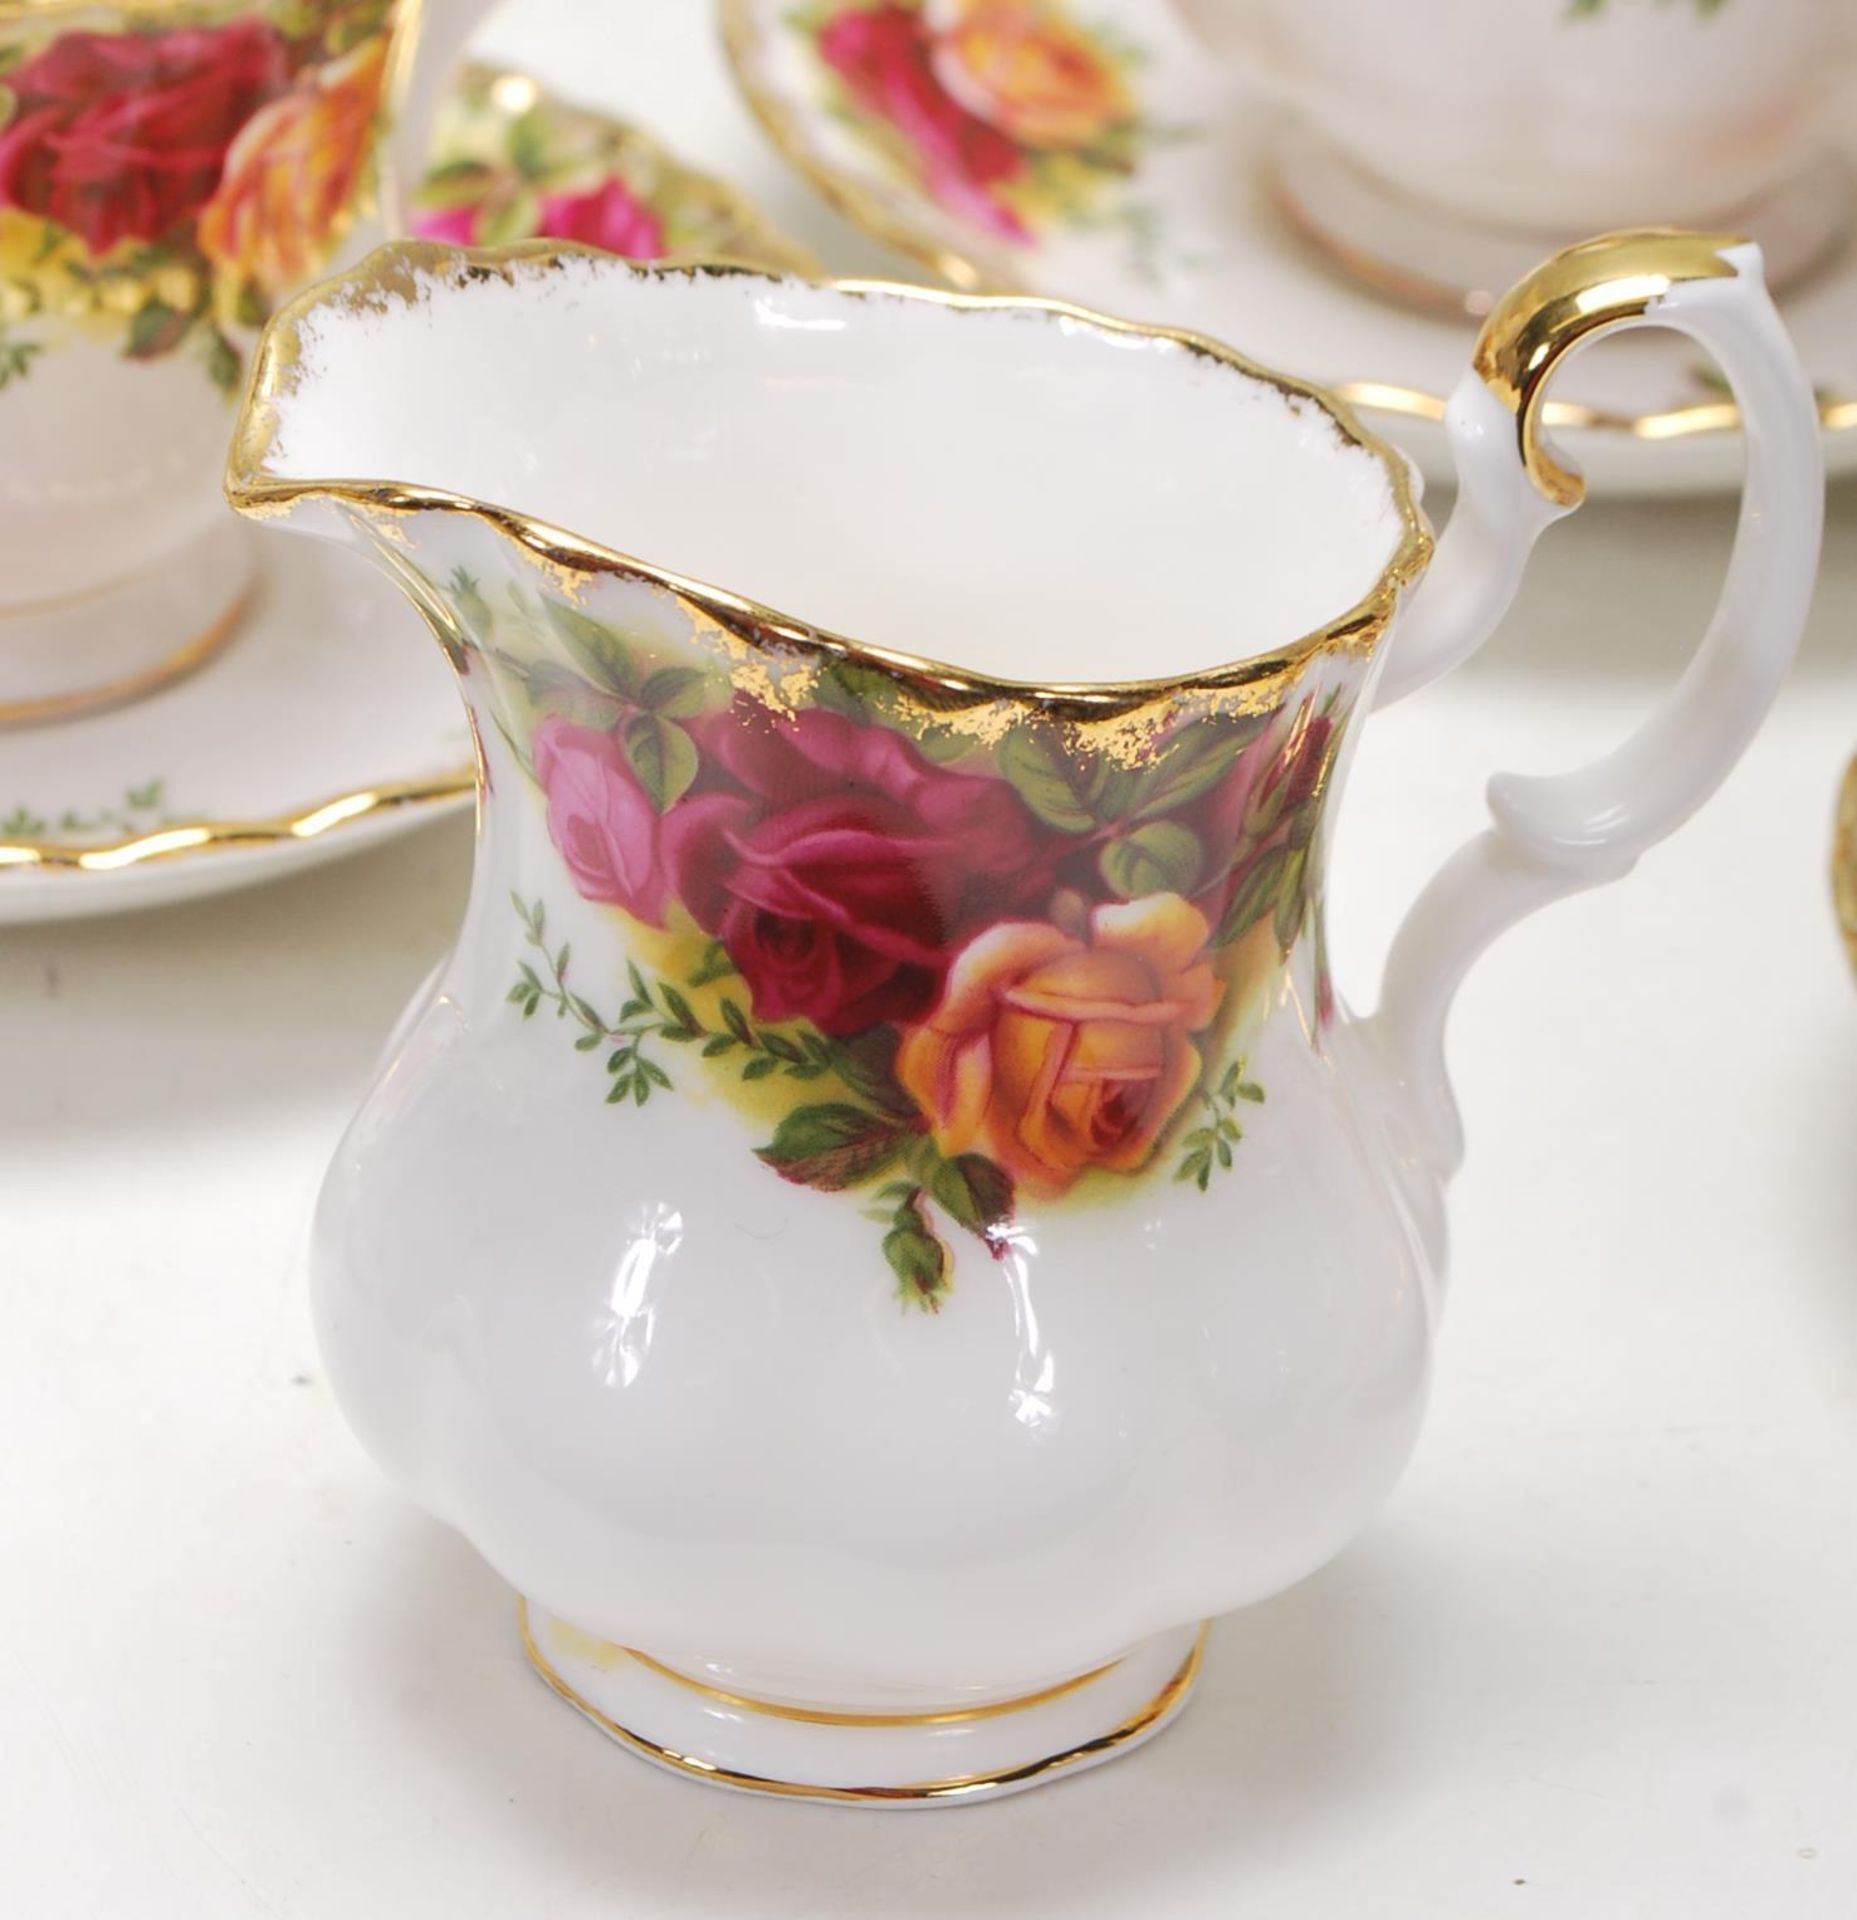 ROYAL ALBERT OLD COUNTRY ROSES TEA SET -TEA SERVICE - Image 5 of 8